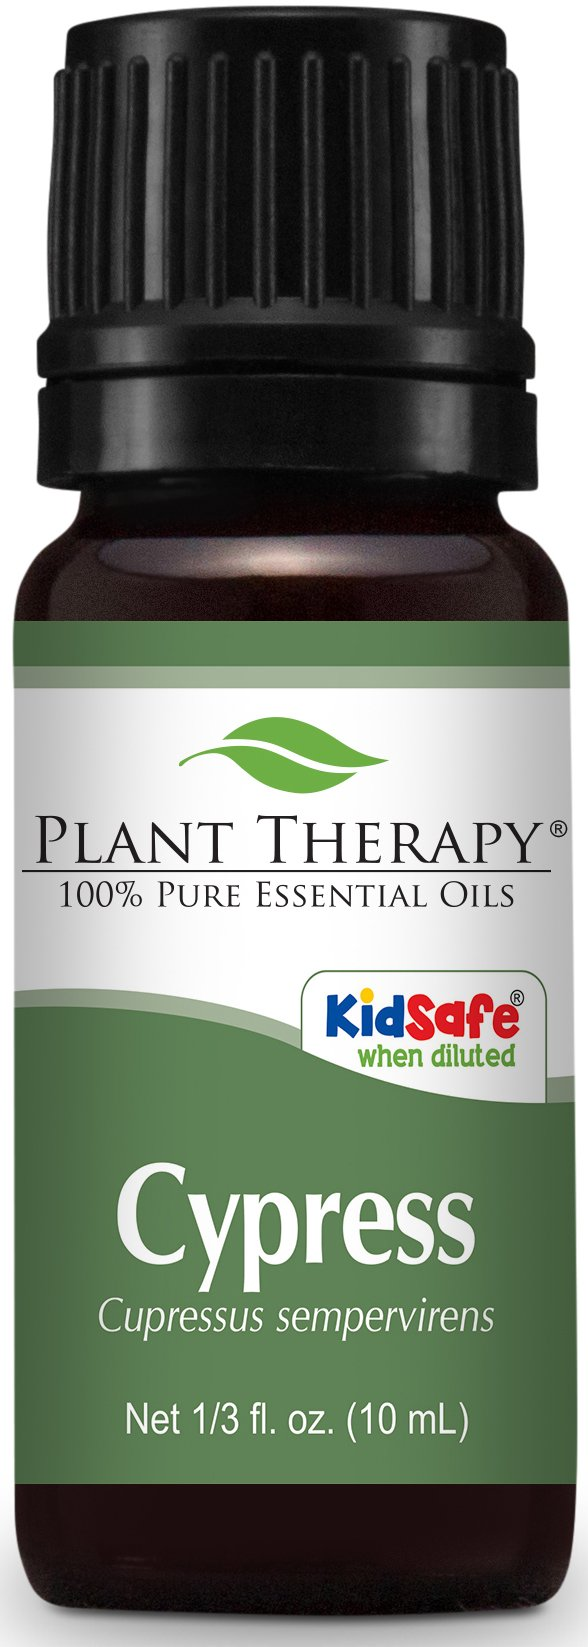 Plant Therapy Cypress Essential Oil. 100% Pure, Undiluted, Therapeutic Grade. 10 ml (1/3 oz).